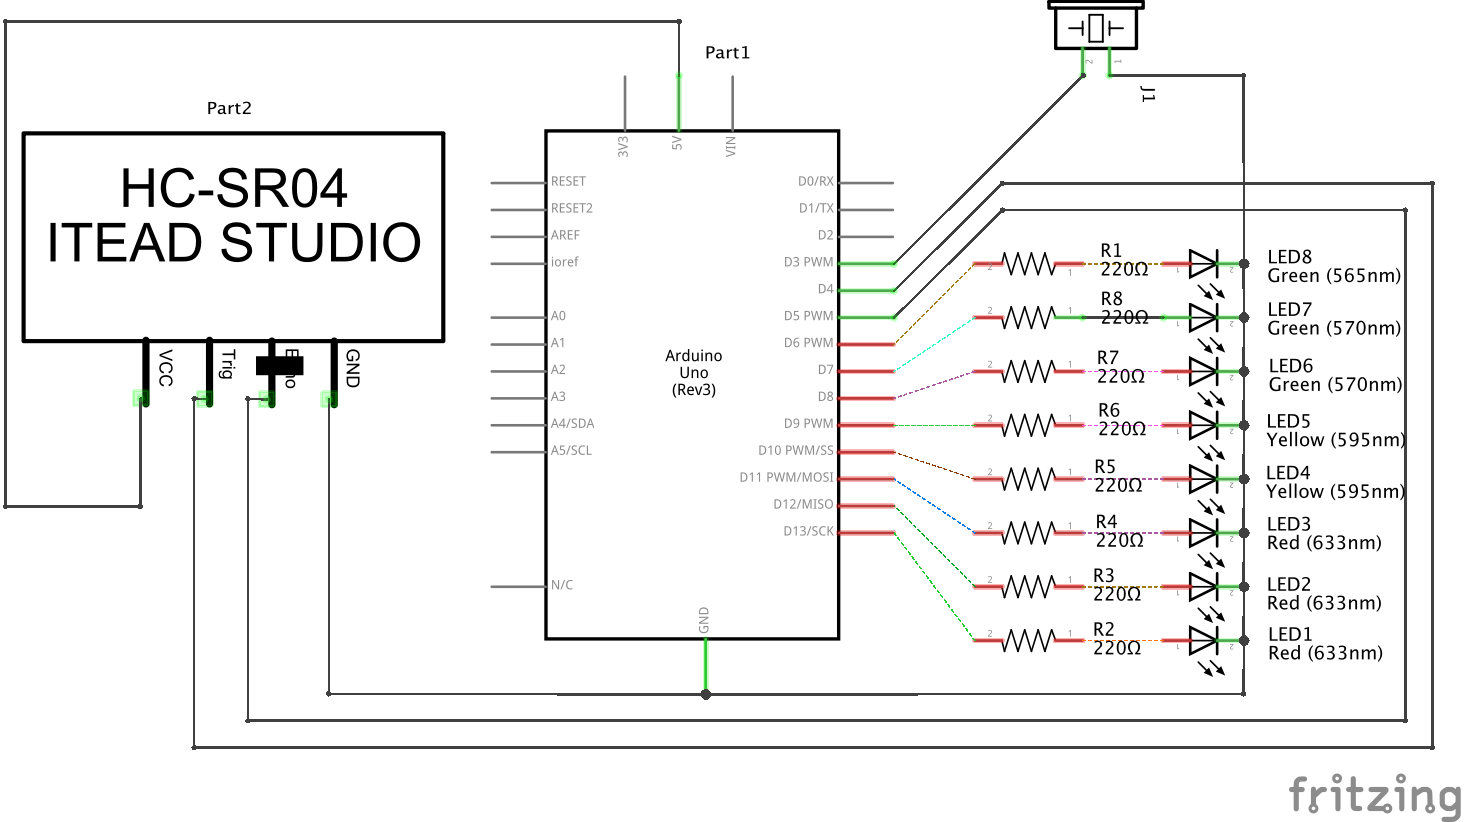 I2c Display Addon in addition Fire Alarm Bell Alarm Clock Worlds Loudest Alarm Clock likewise Christmas Tree in addition K7102 Metal Detector Kit furthermore 75673 Build Your Own Home Made Water Level Meter. on build a piezo buzzer